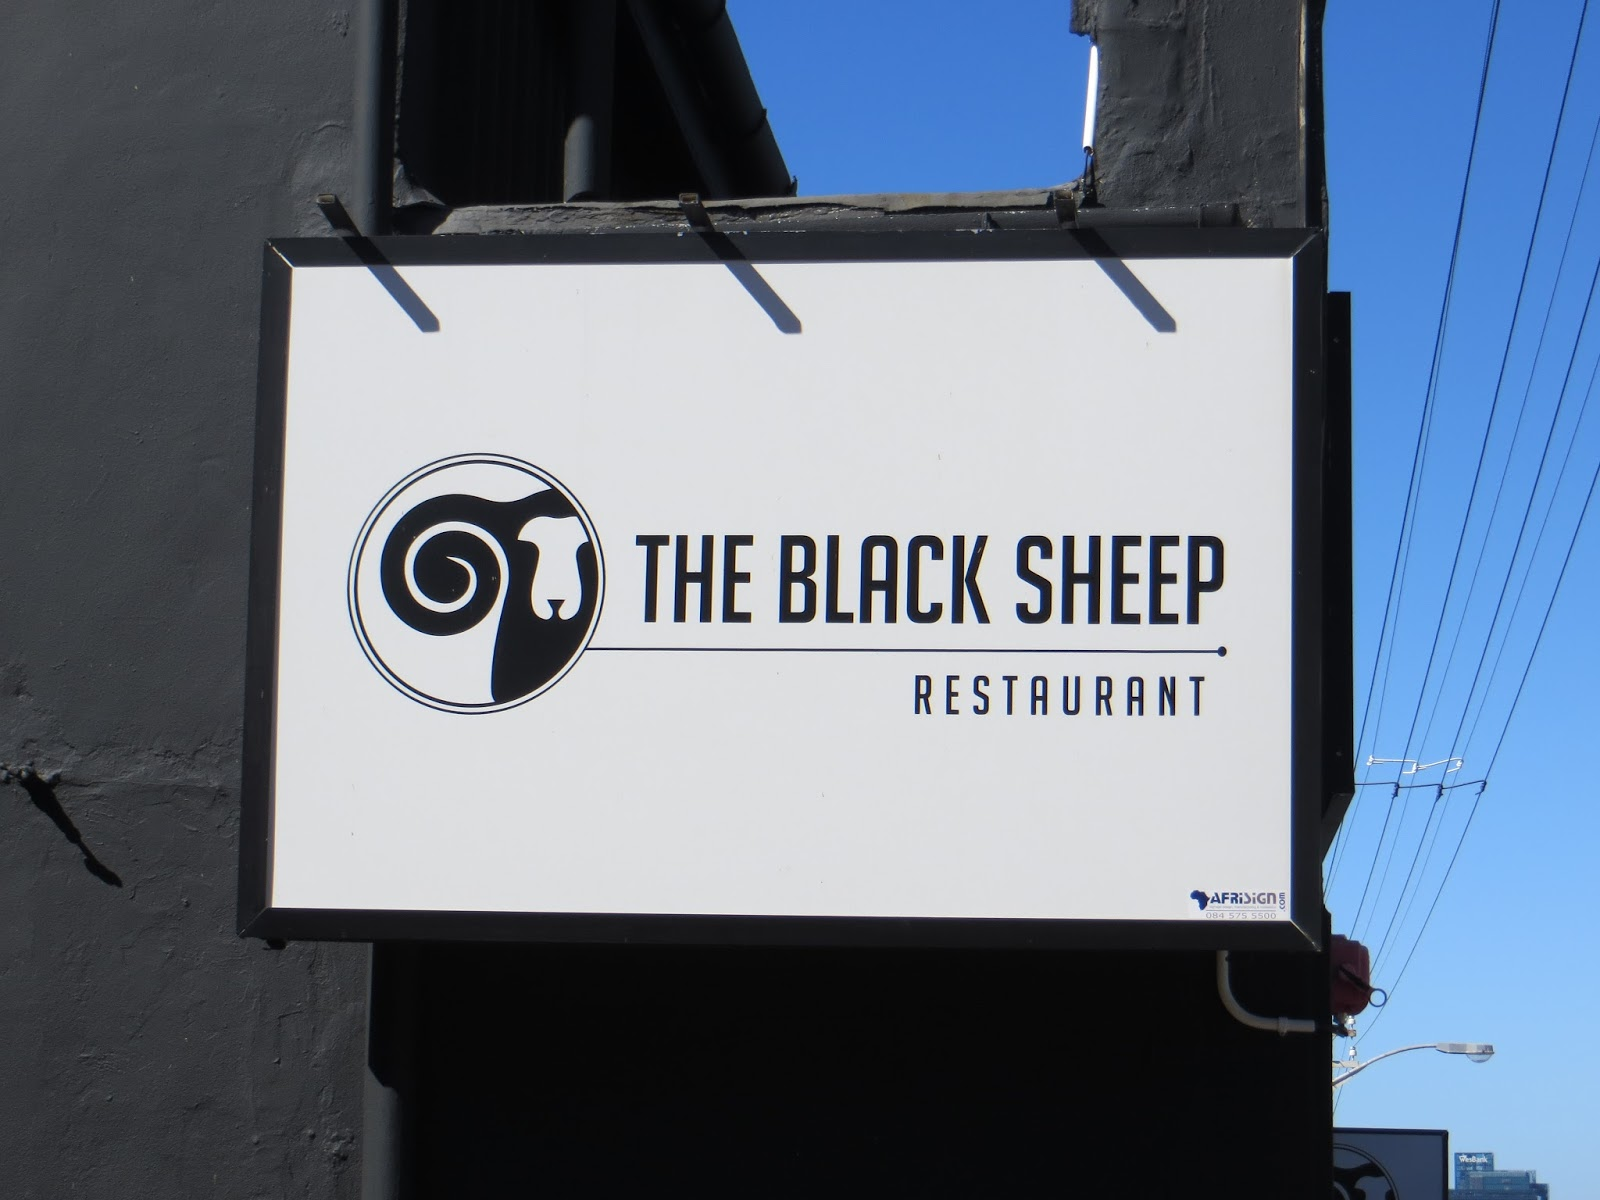 the black sheep of the town Black sheep is a great choice of a little local restaurant for a trendy but casual  sundowner drink or meal with friends in cape town.